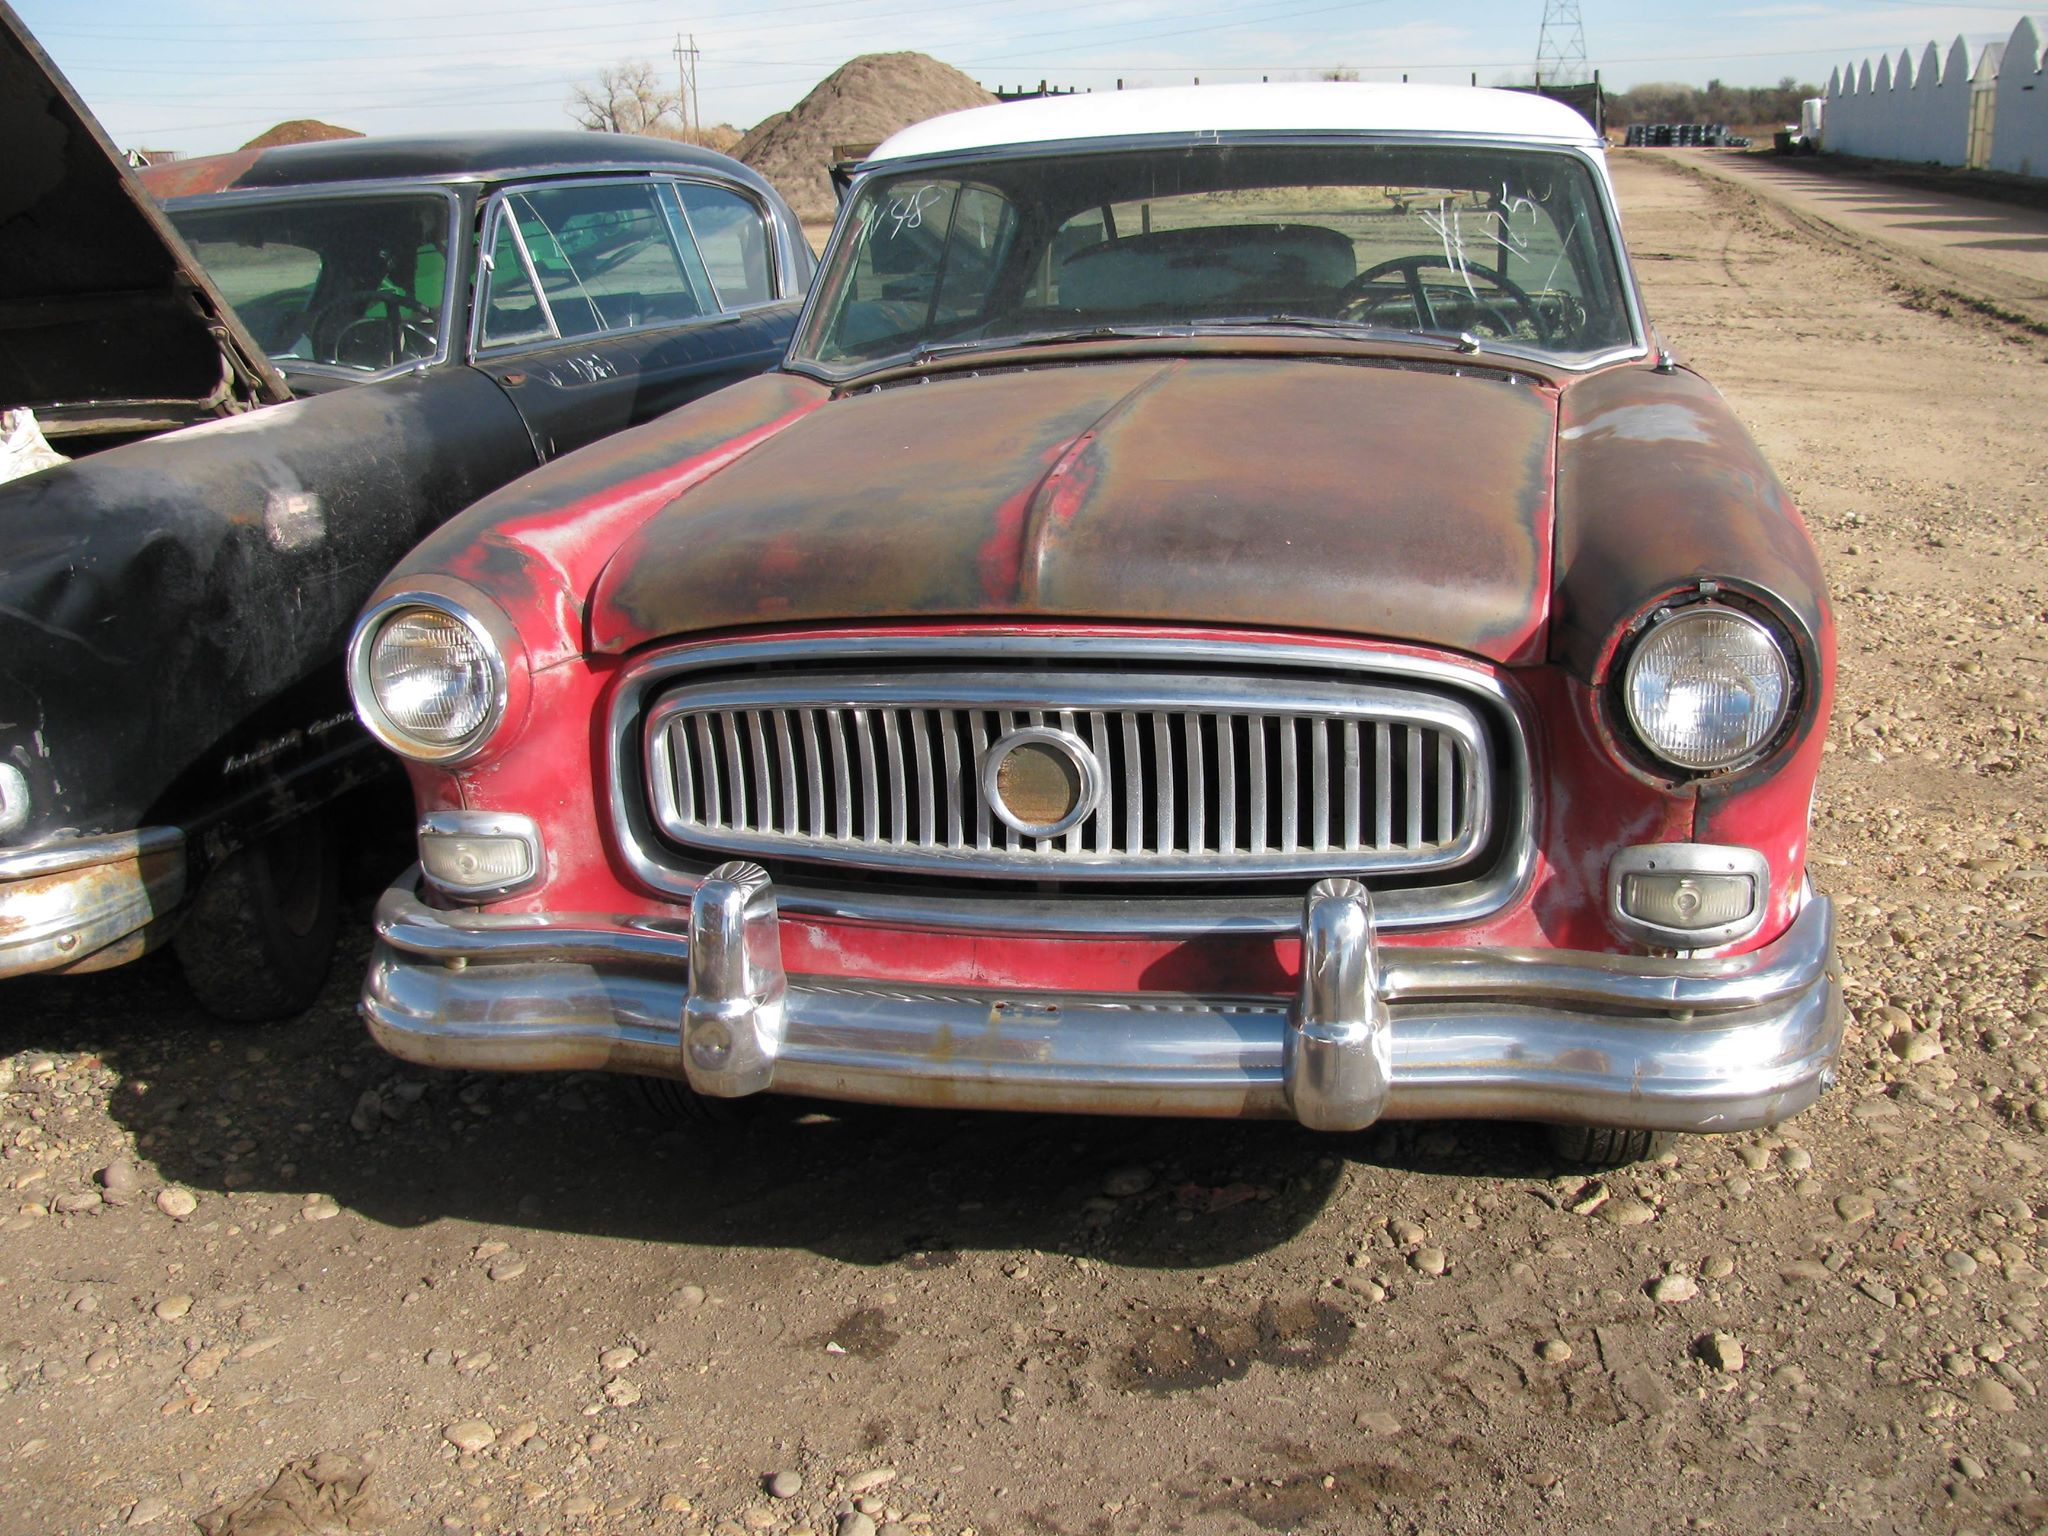 The Nash as it appeared in the field where it had sat since 1961.